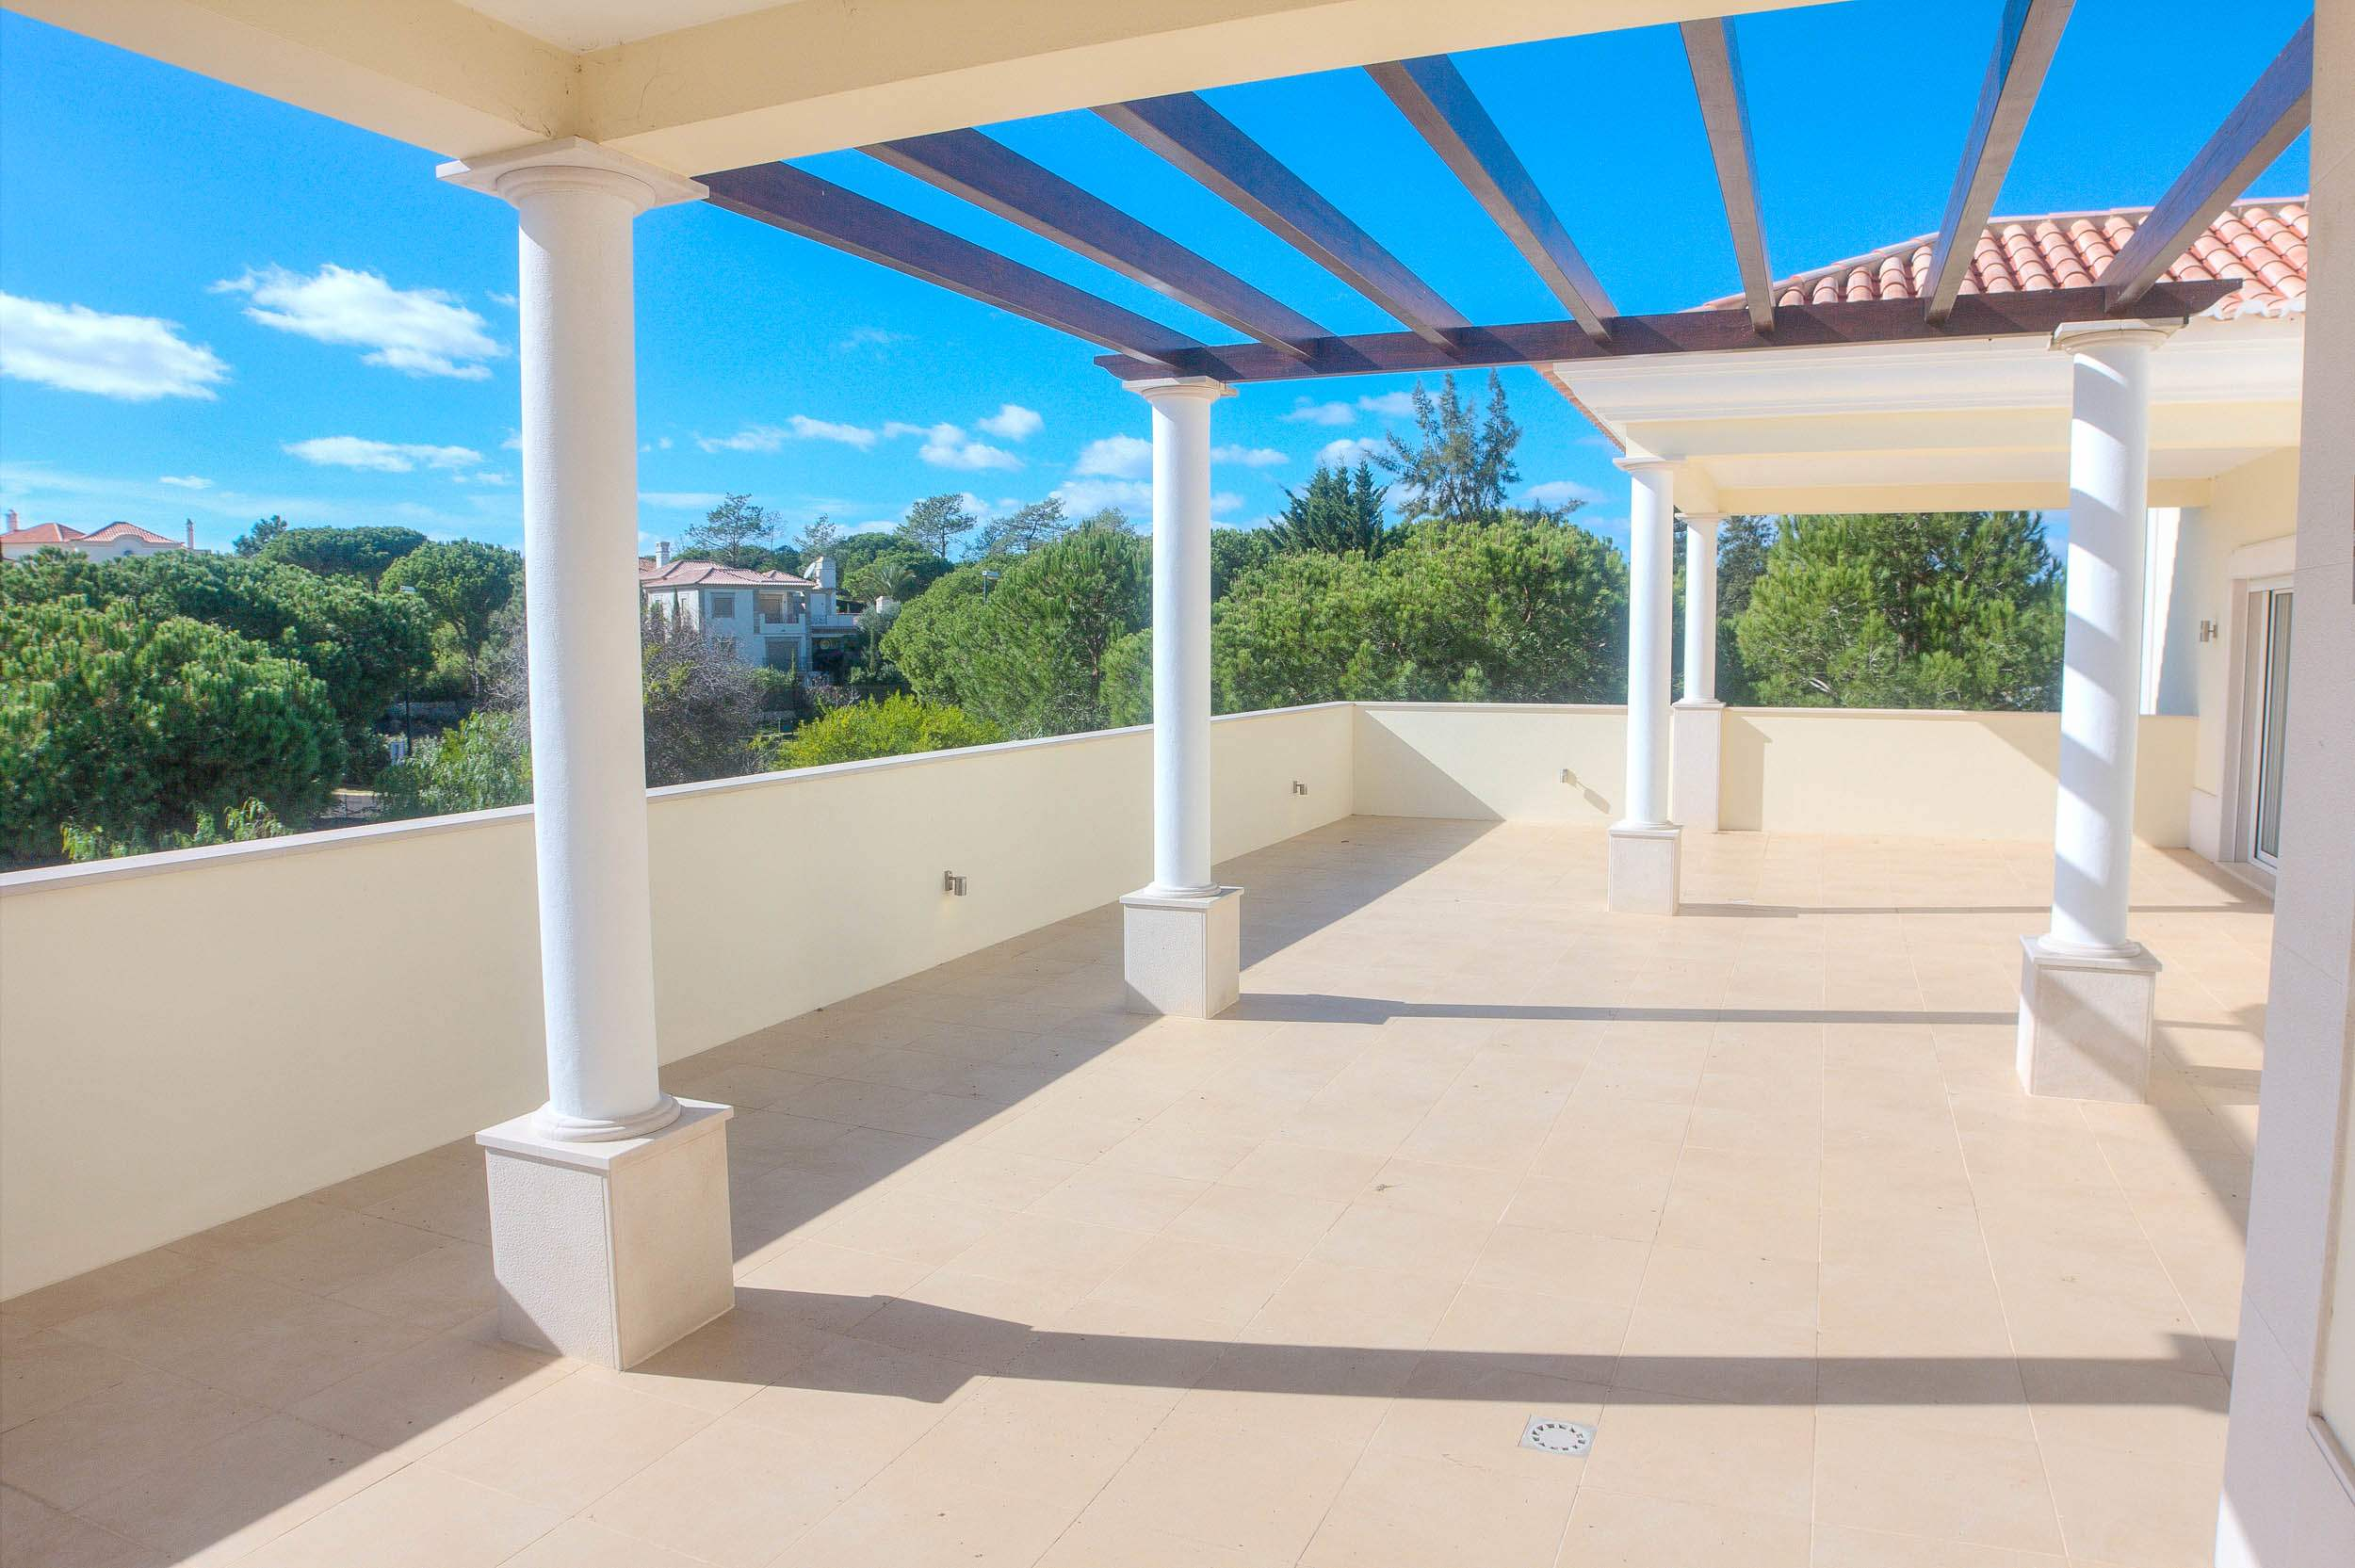 Villa Vida Doce, 6 bedroom villa in Vilamoura Area, Algarve Photo #29